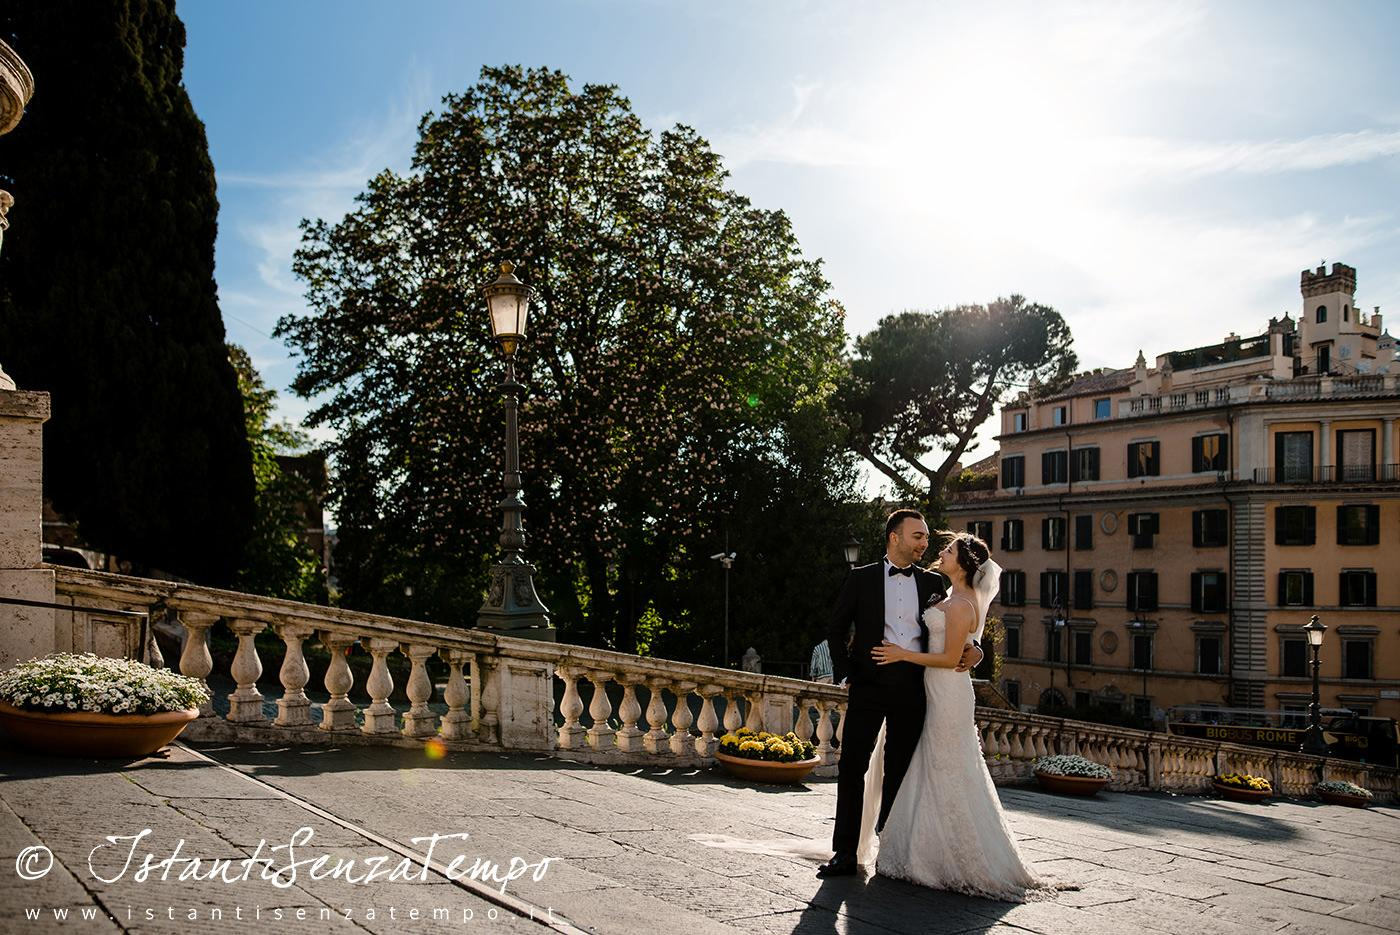 turkish wedding in rome italy-16